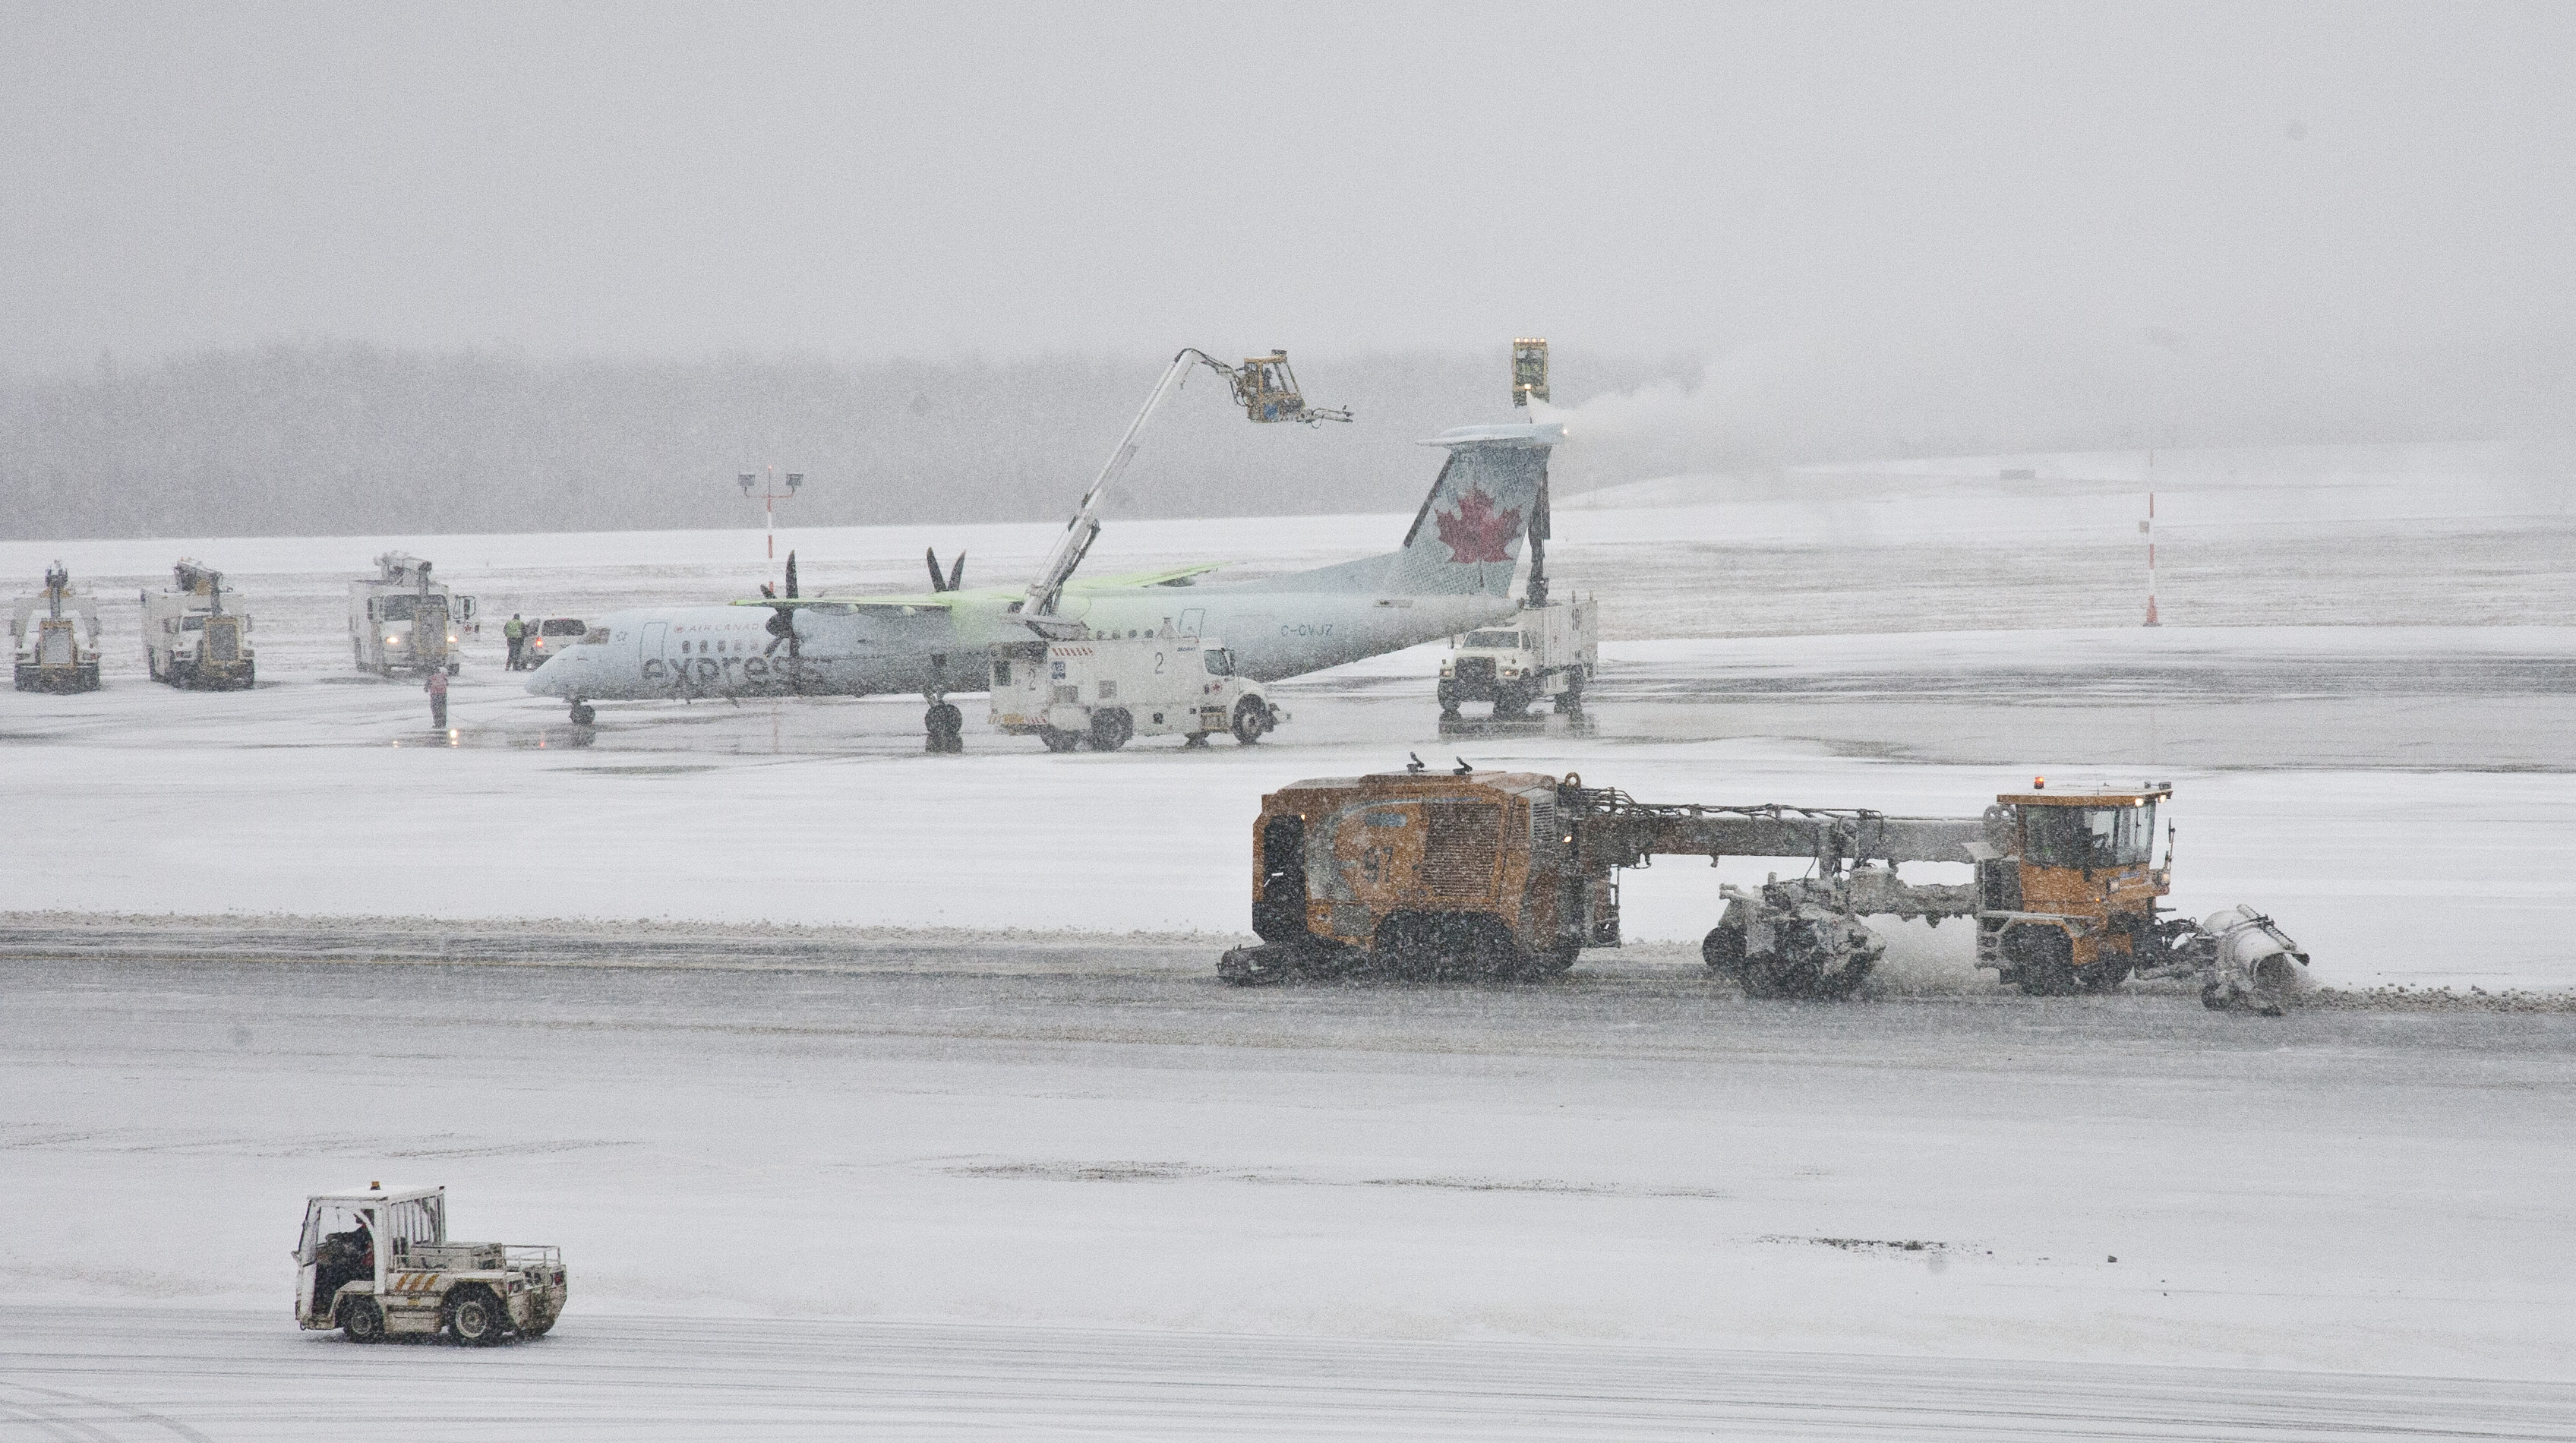 An Air Canada Express plane gets de-iced while a plow clears snow on the taramac at Halifax's Stanfield airport on a snowy Friday. Friday January 6, 2017. (Mike Harvey)